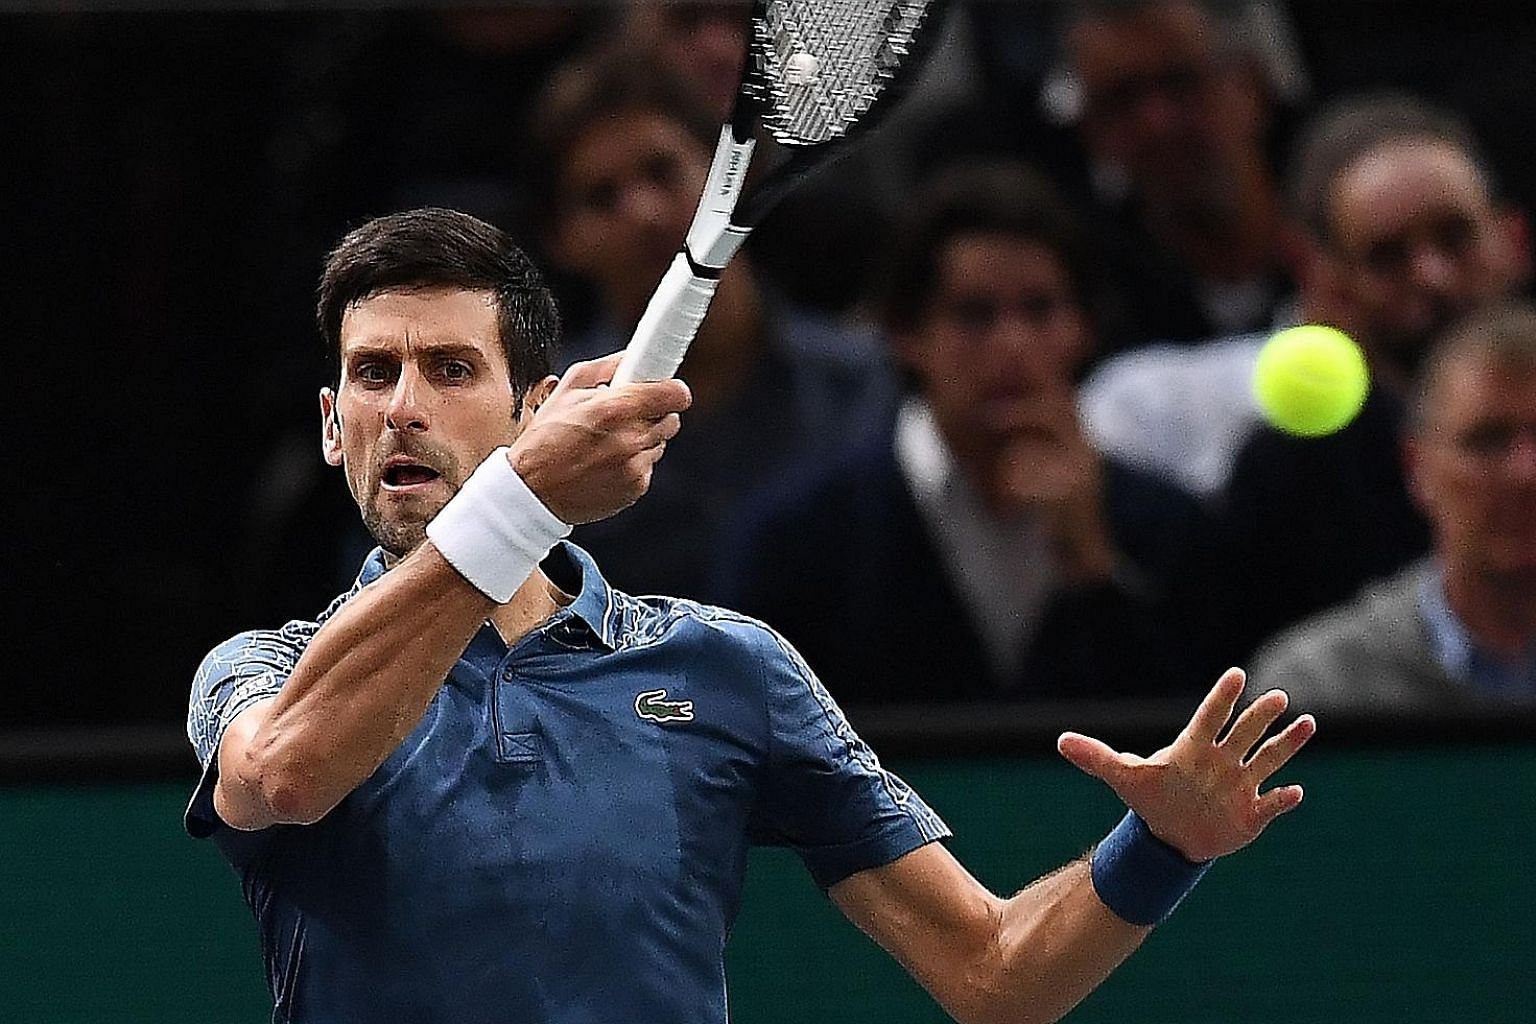 Novak Djokovic defeated Marin Cilic in the Paris Masters quarter-finals. The Serb will return to the world No. 1 spot tomorrow